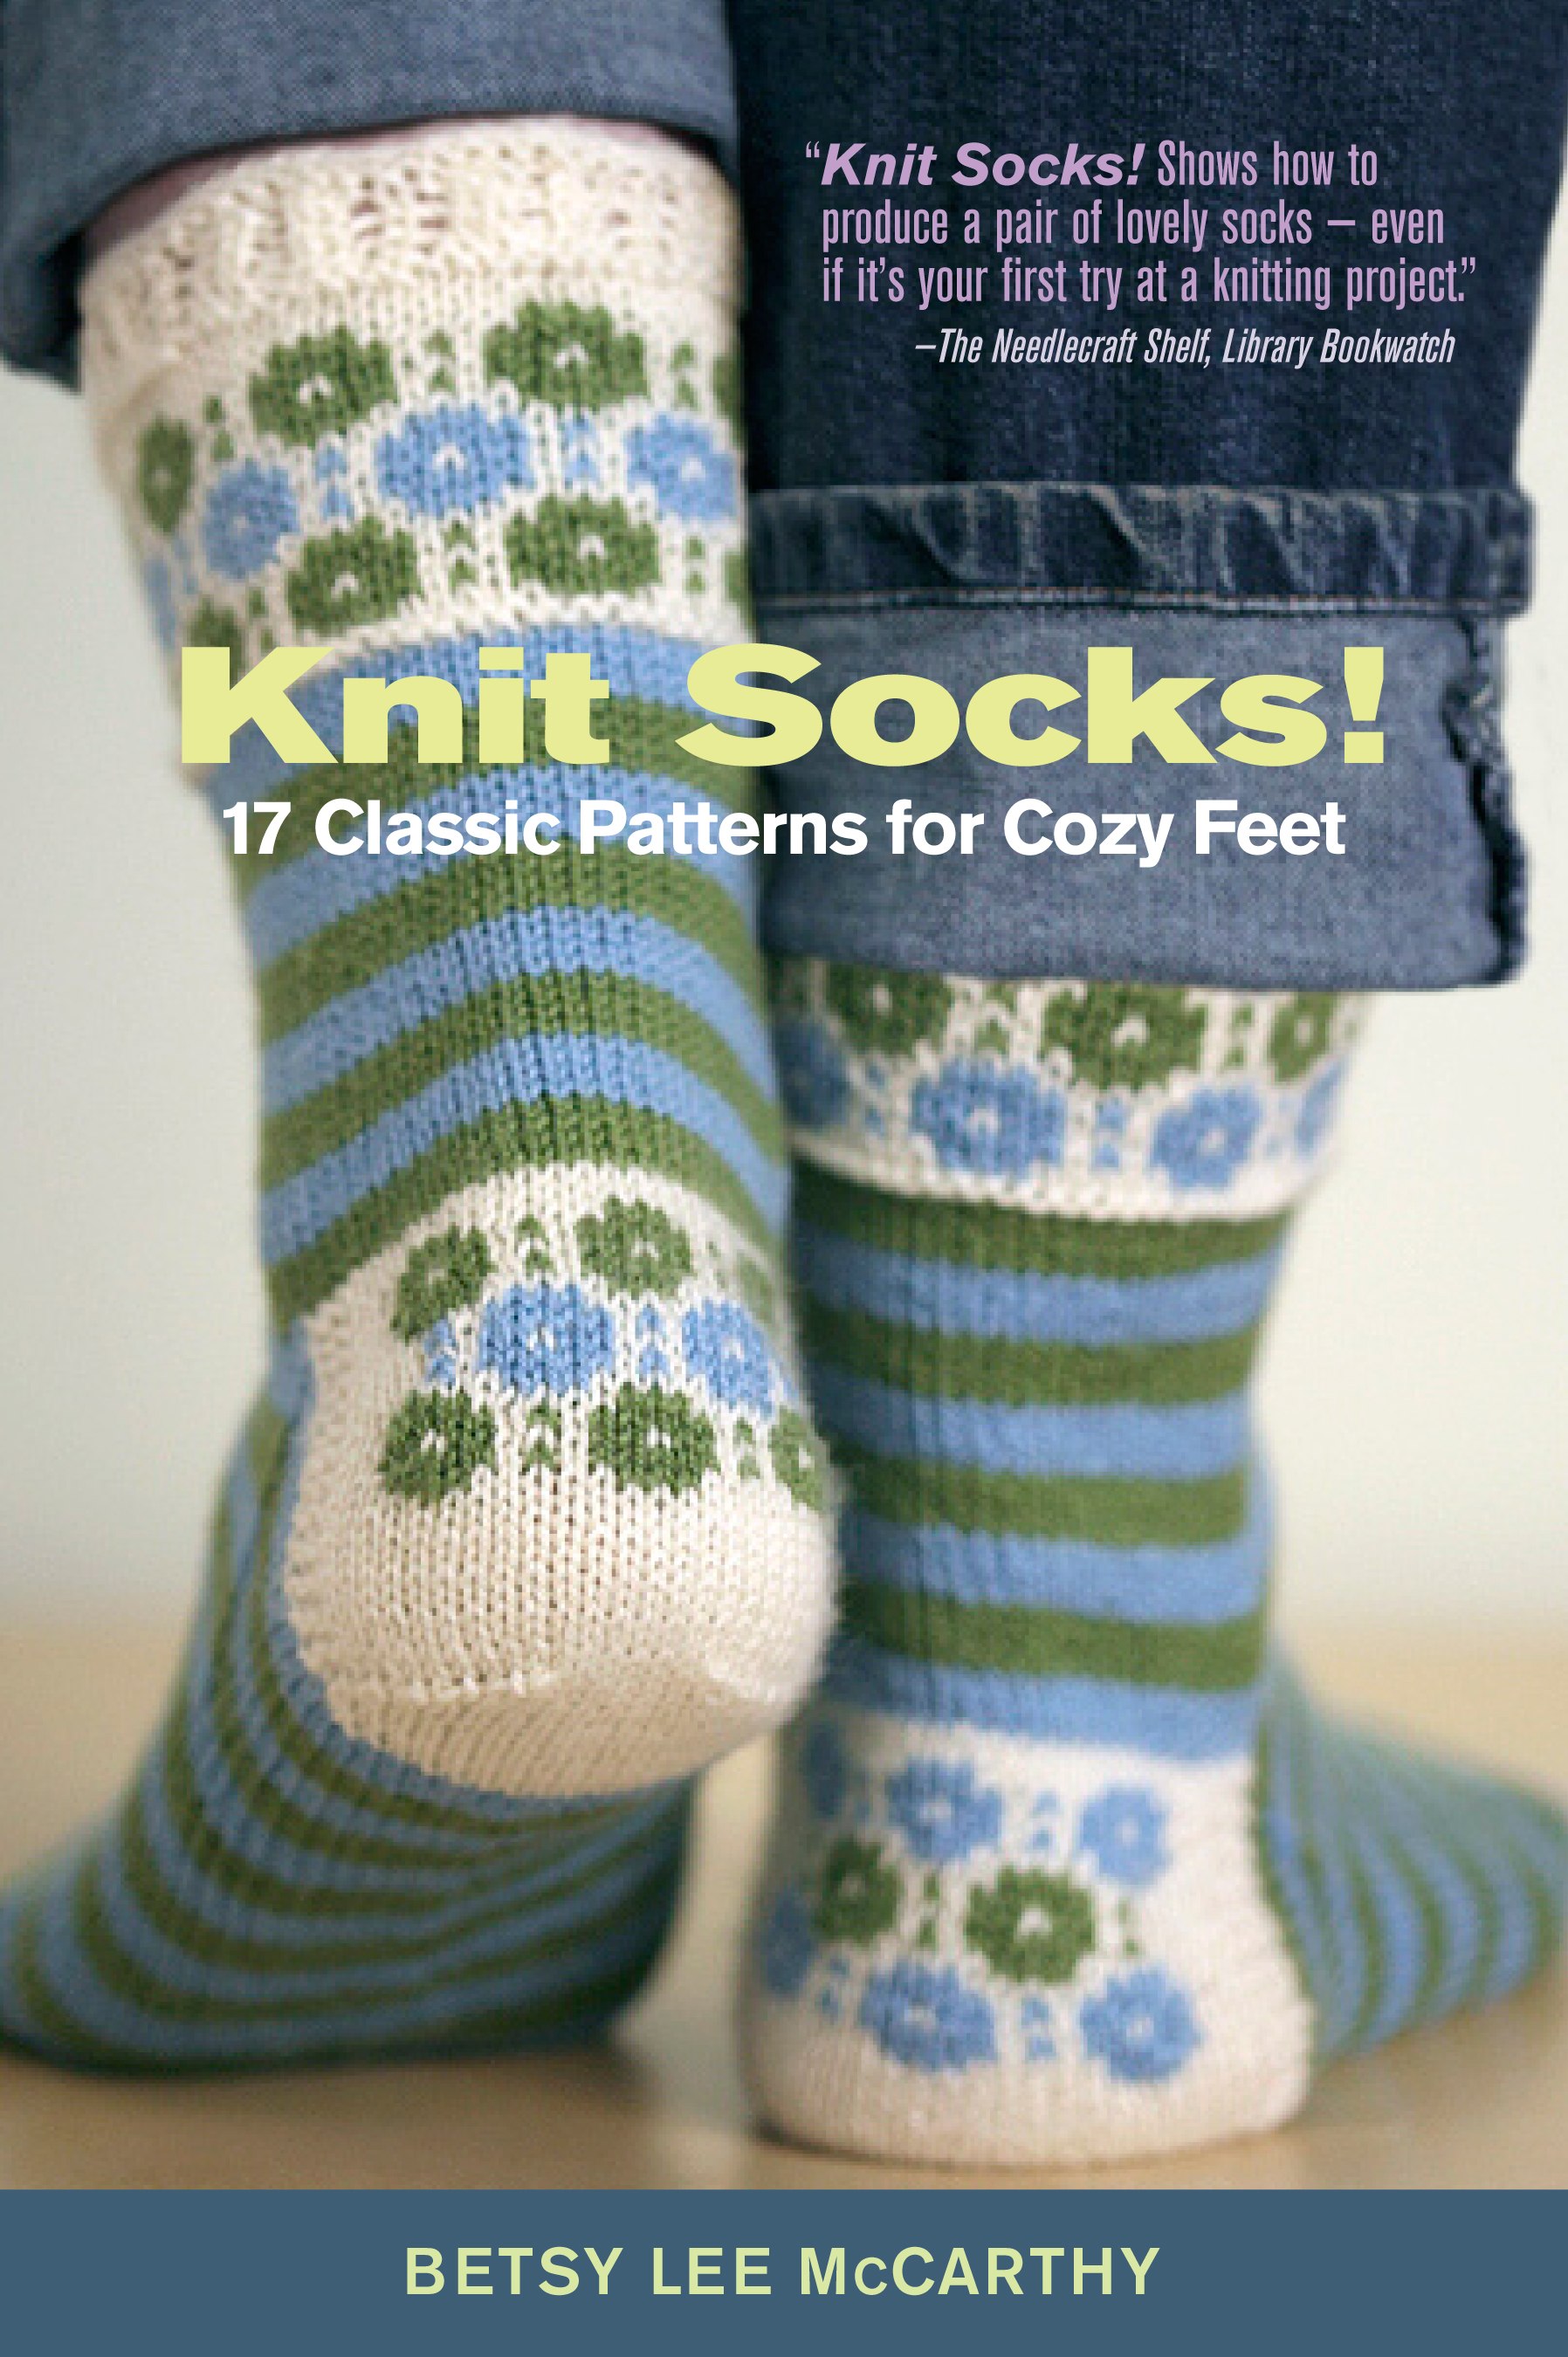 Knit Socks! 17 Classic Patterns for Cozy Feet - Betsy McCarthy